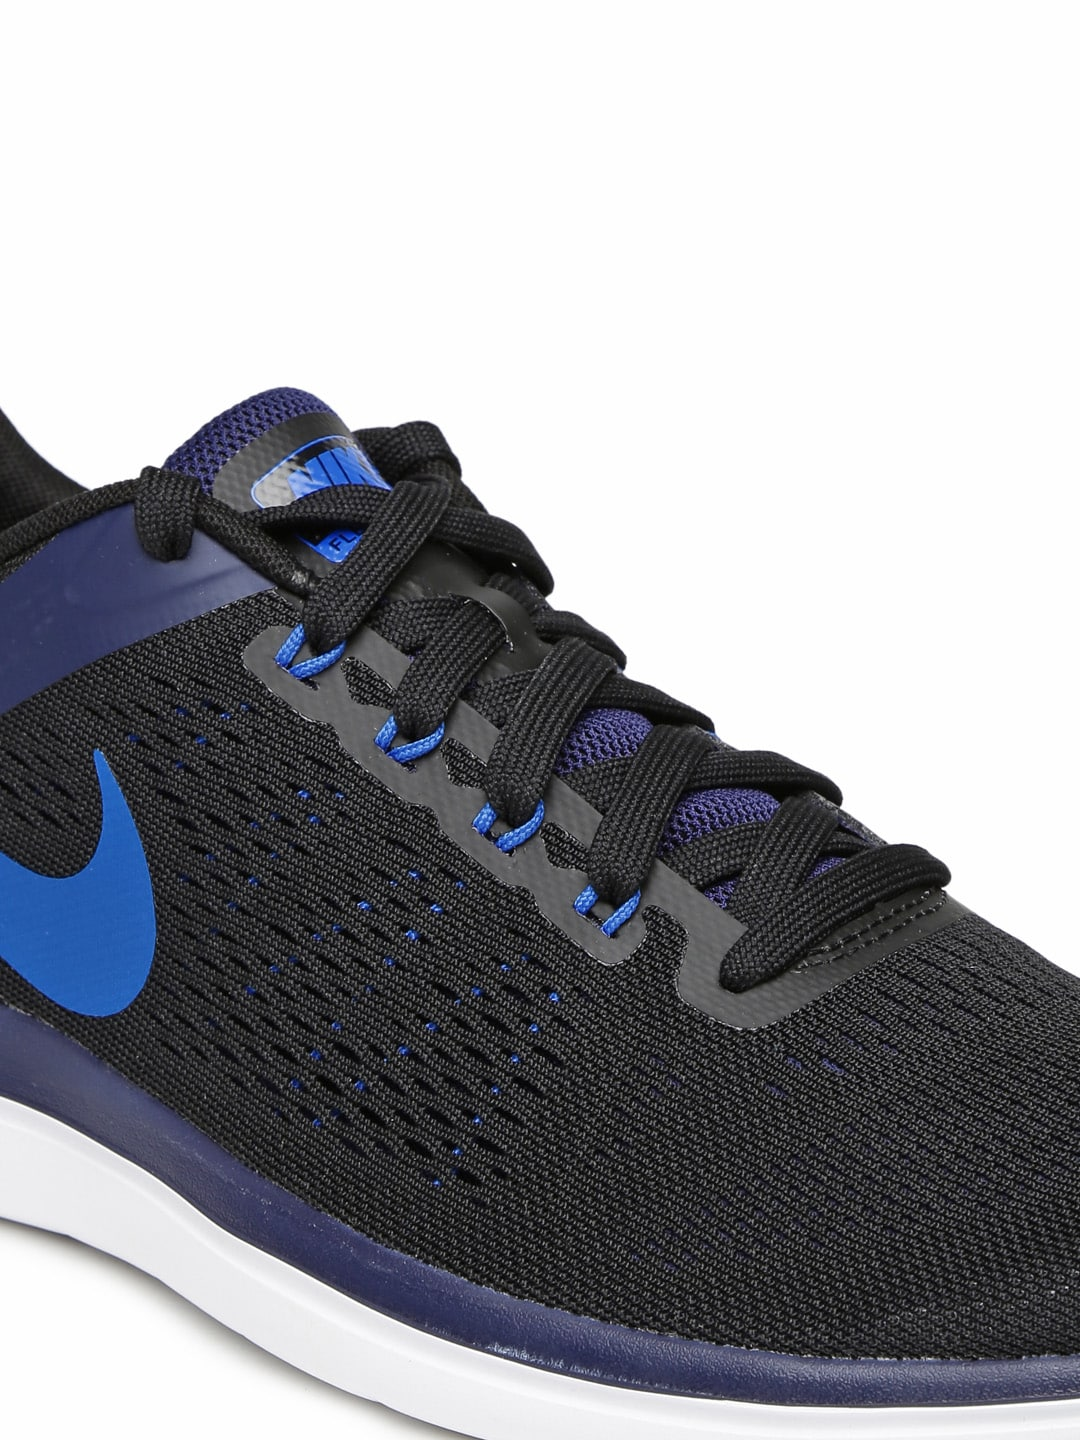 Nike Shoes for Men | Nordstrom